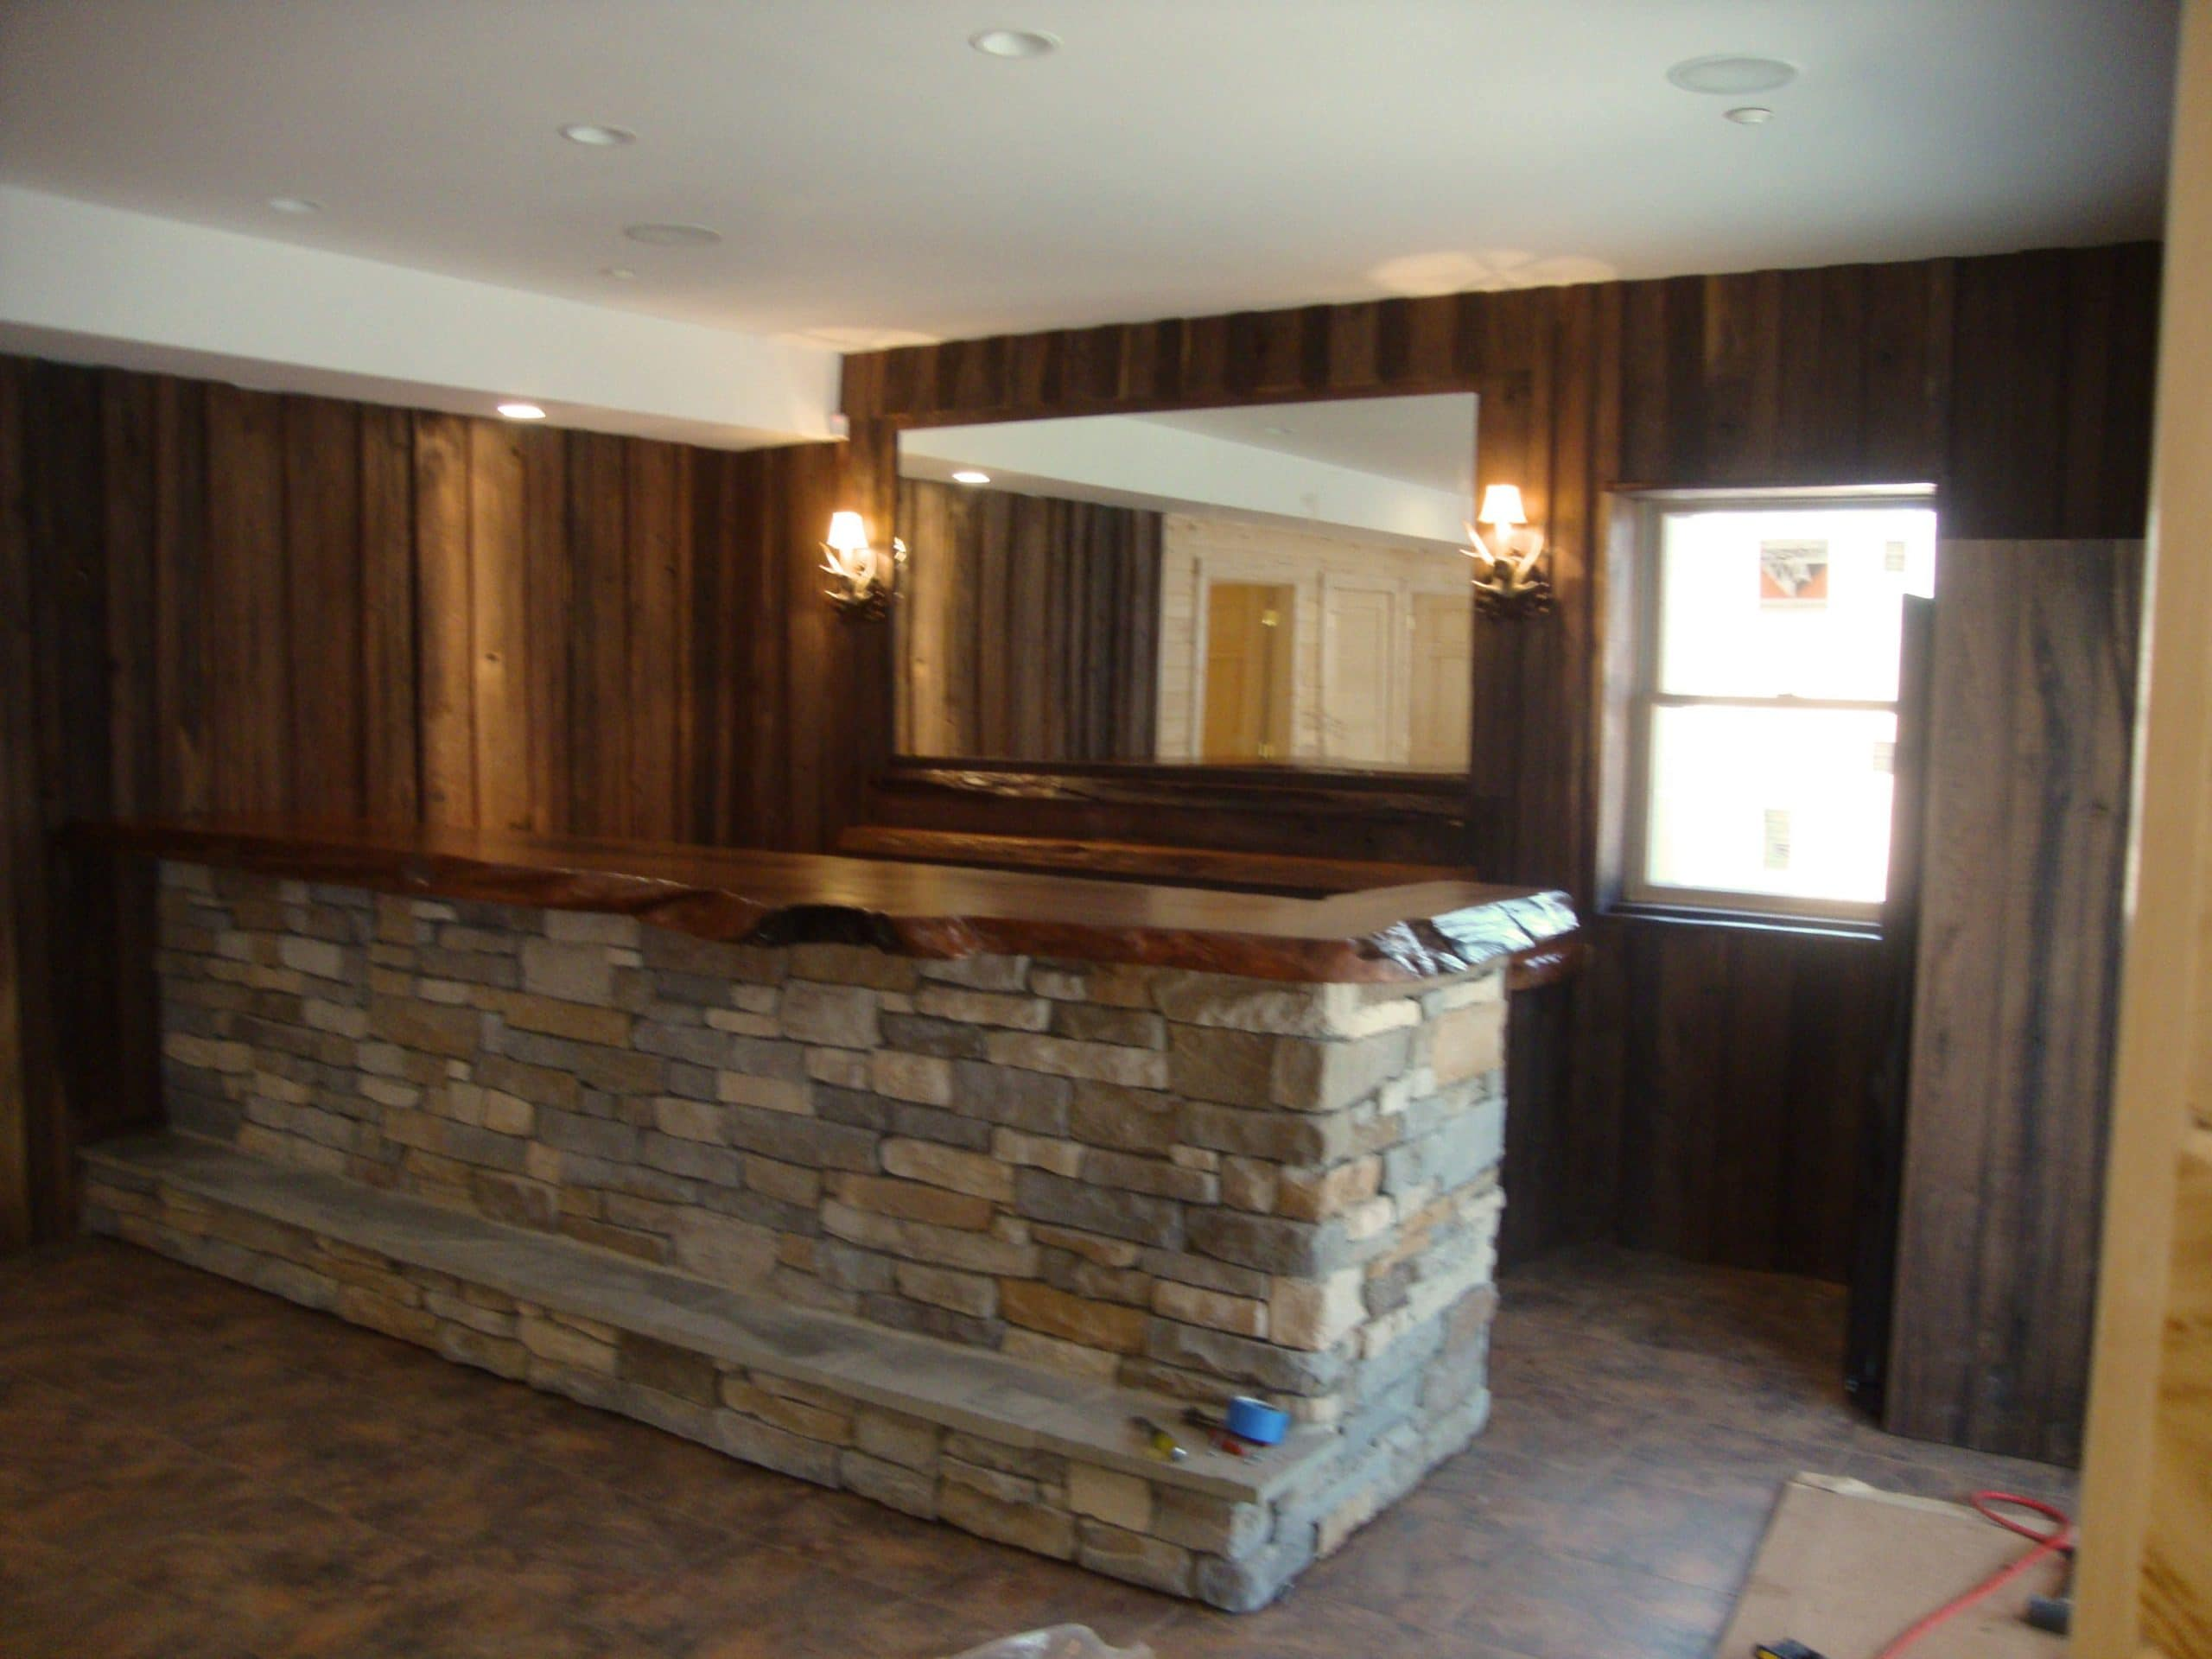 Custom wet bars live edge wood slabs littlebranchfarm - Bar tops ideas ...